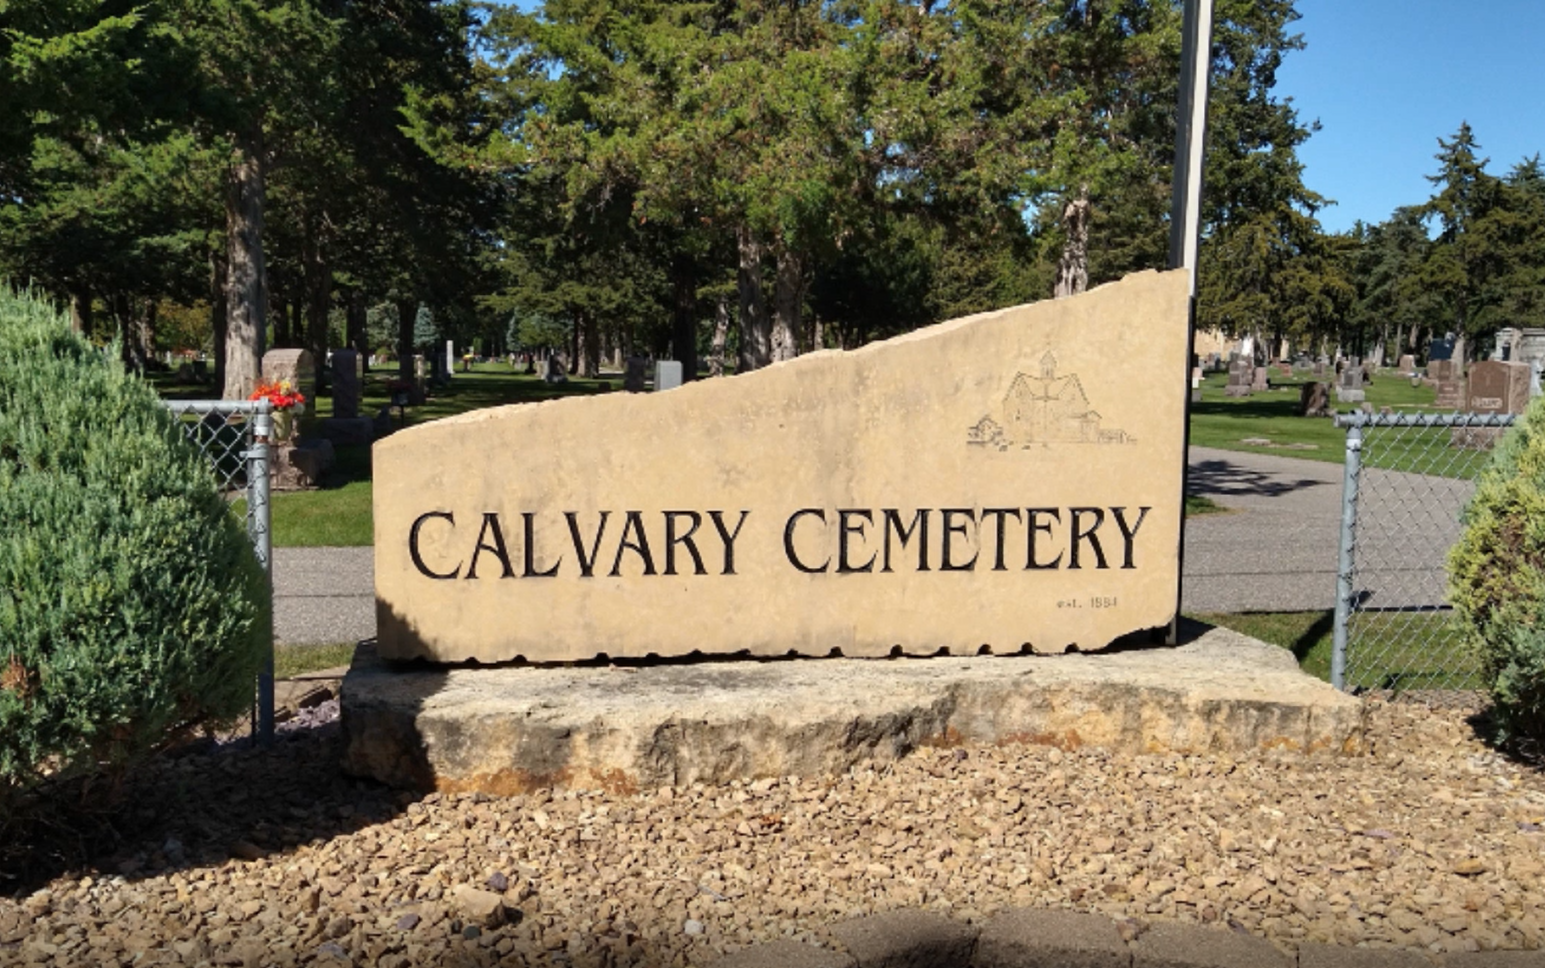 Image of the Calvary Cemetery entrance monument. Color image c. 2020